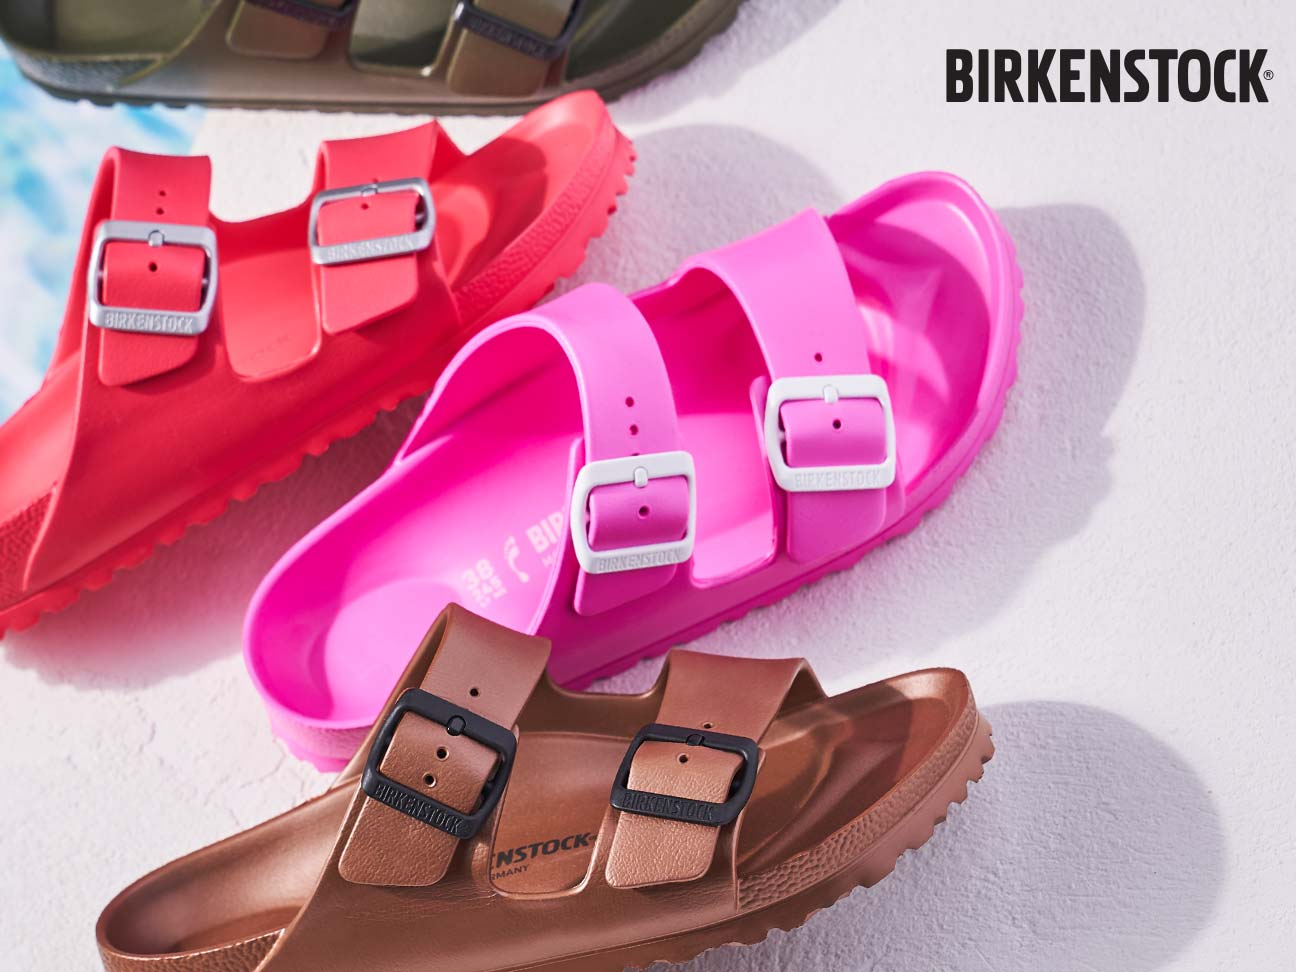 a group of birkenstock footbed sandals